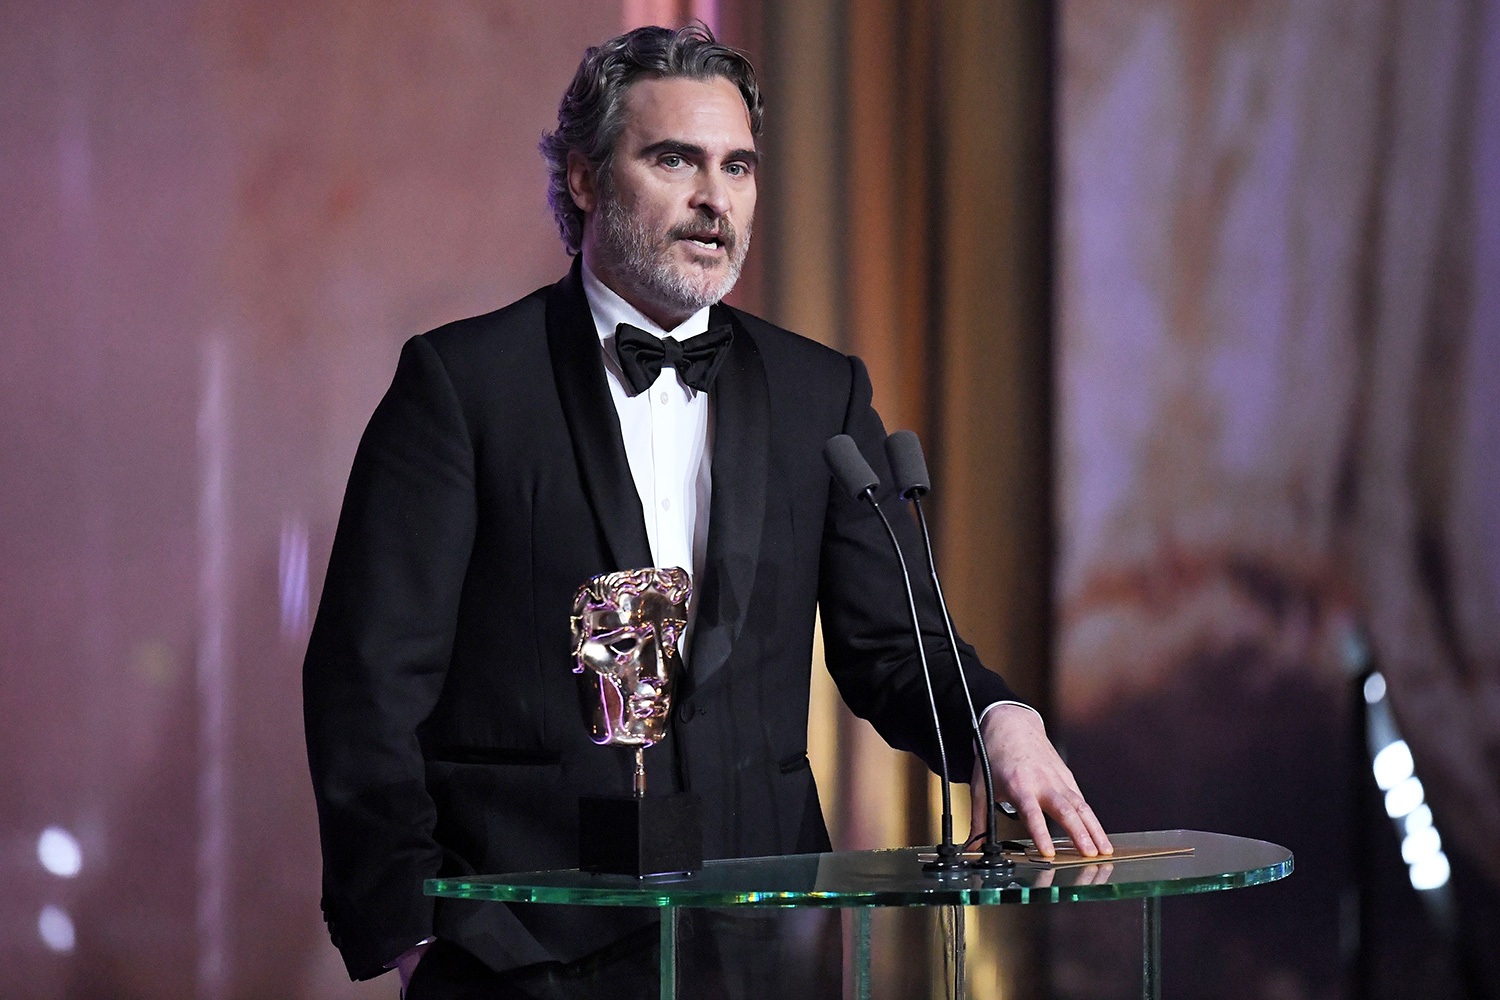 Joaquin Phoenix - Leading Actor - Joker Exclusive - 73rd British Academy Film Awards, Ceremony, Royal Albert Hall, London, UK - 02 Feb 2020